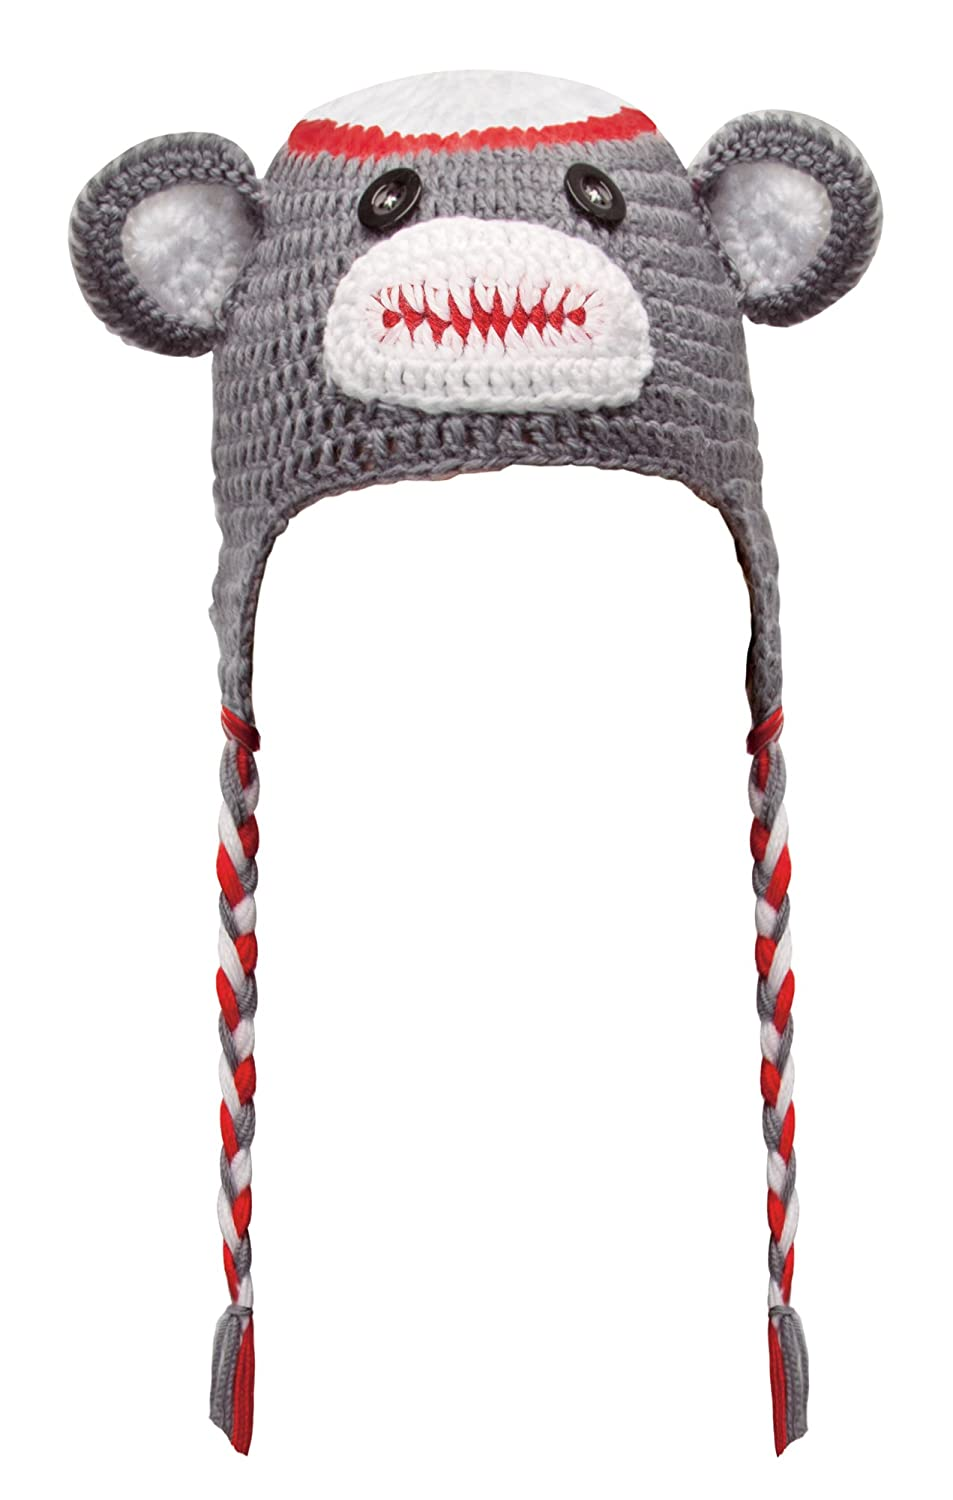 Amazon.com: Zombie Monkey Hat - Knit Animal Beanie with Braided Ties ...